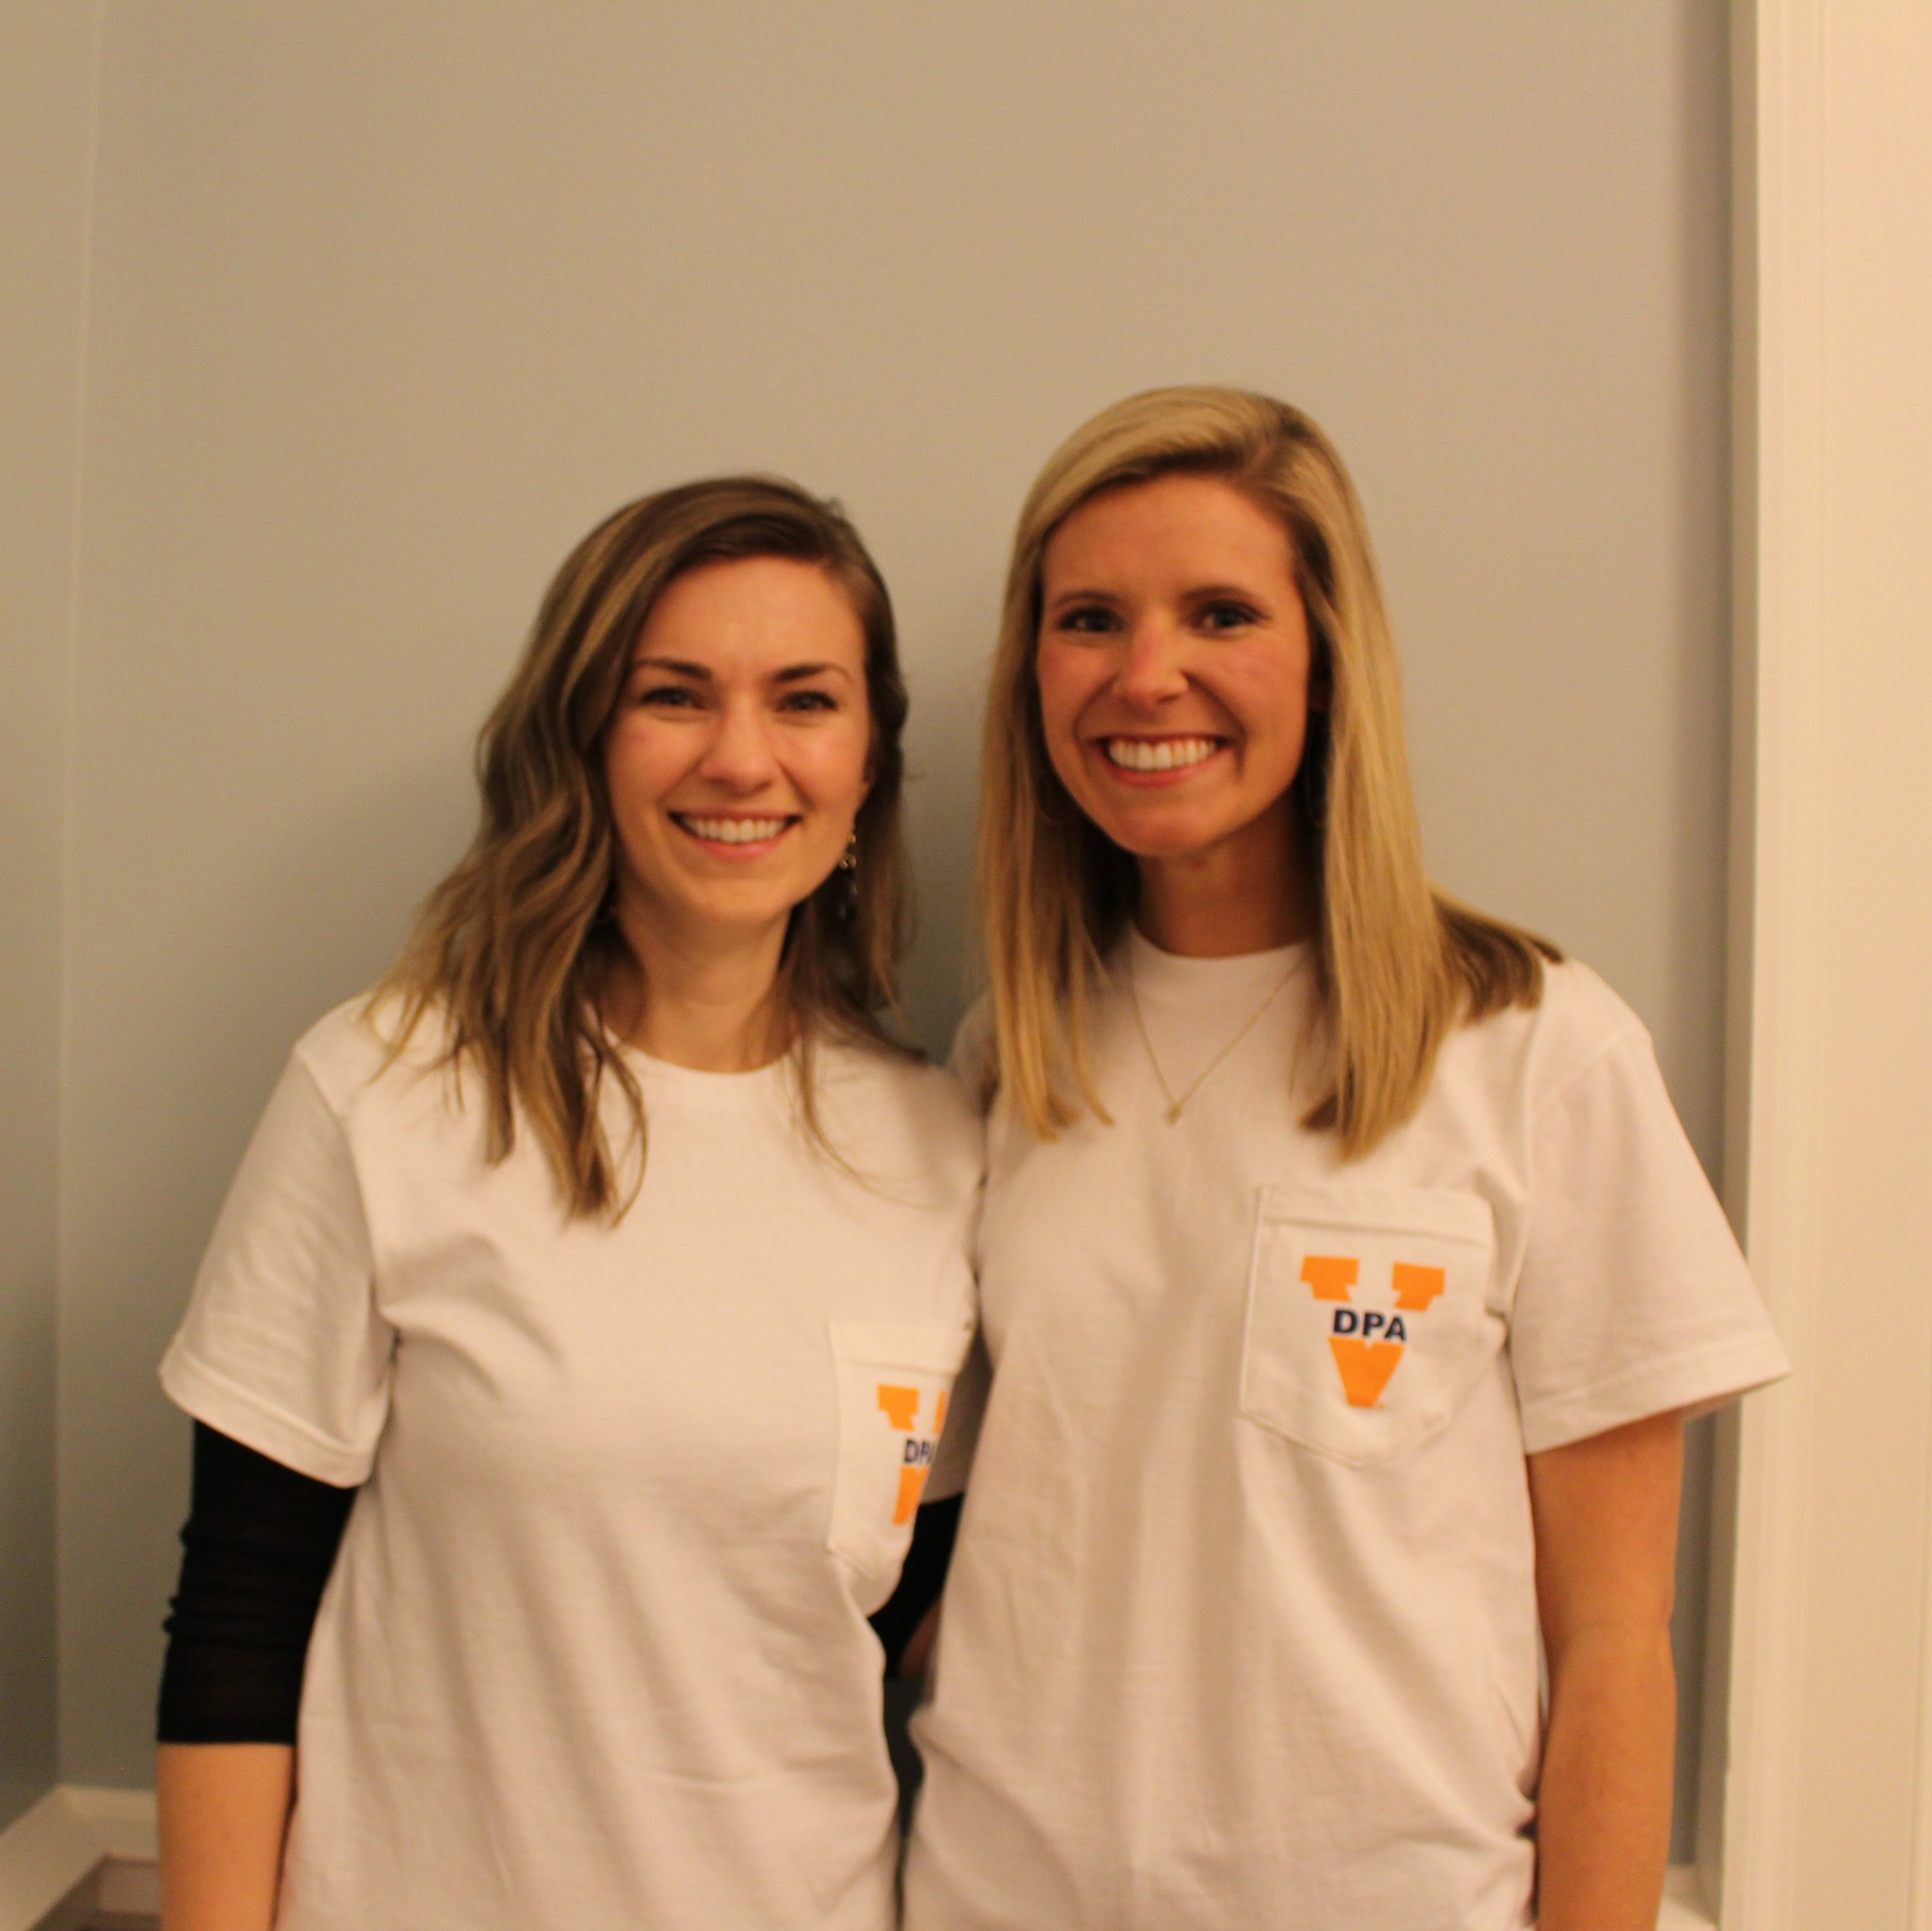 Copy of Community Service Committee | Kristen Aycock & Laura Bradway